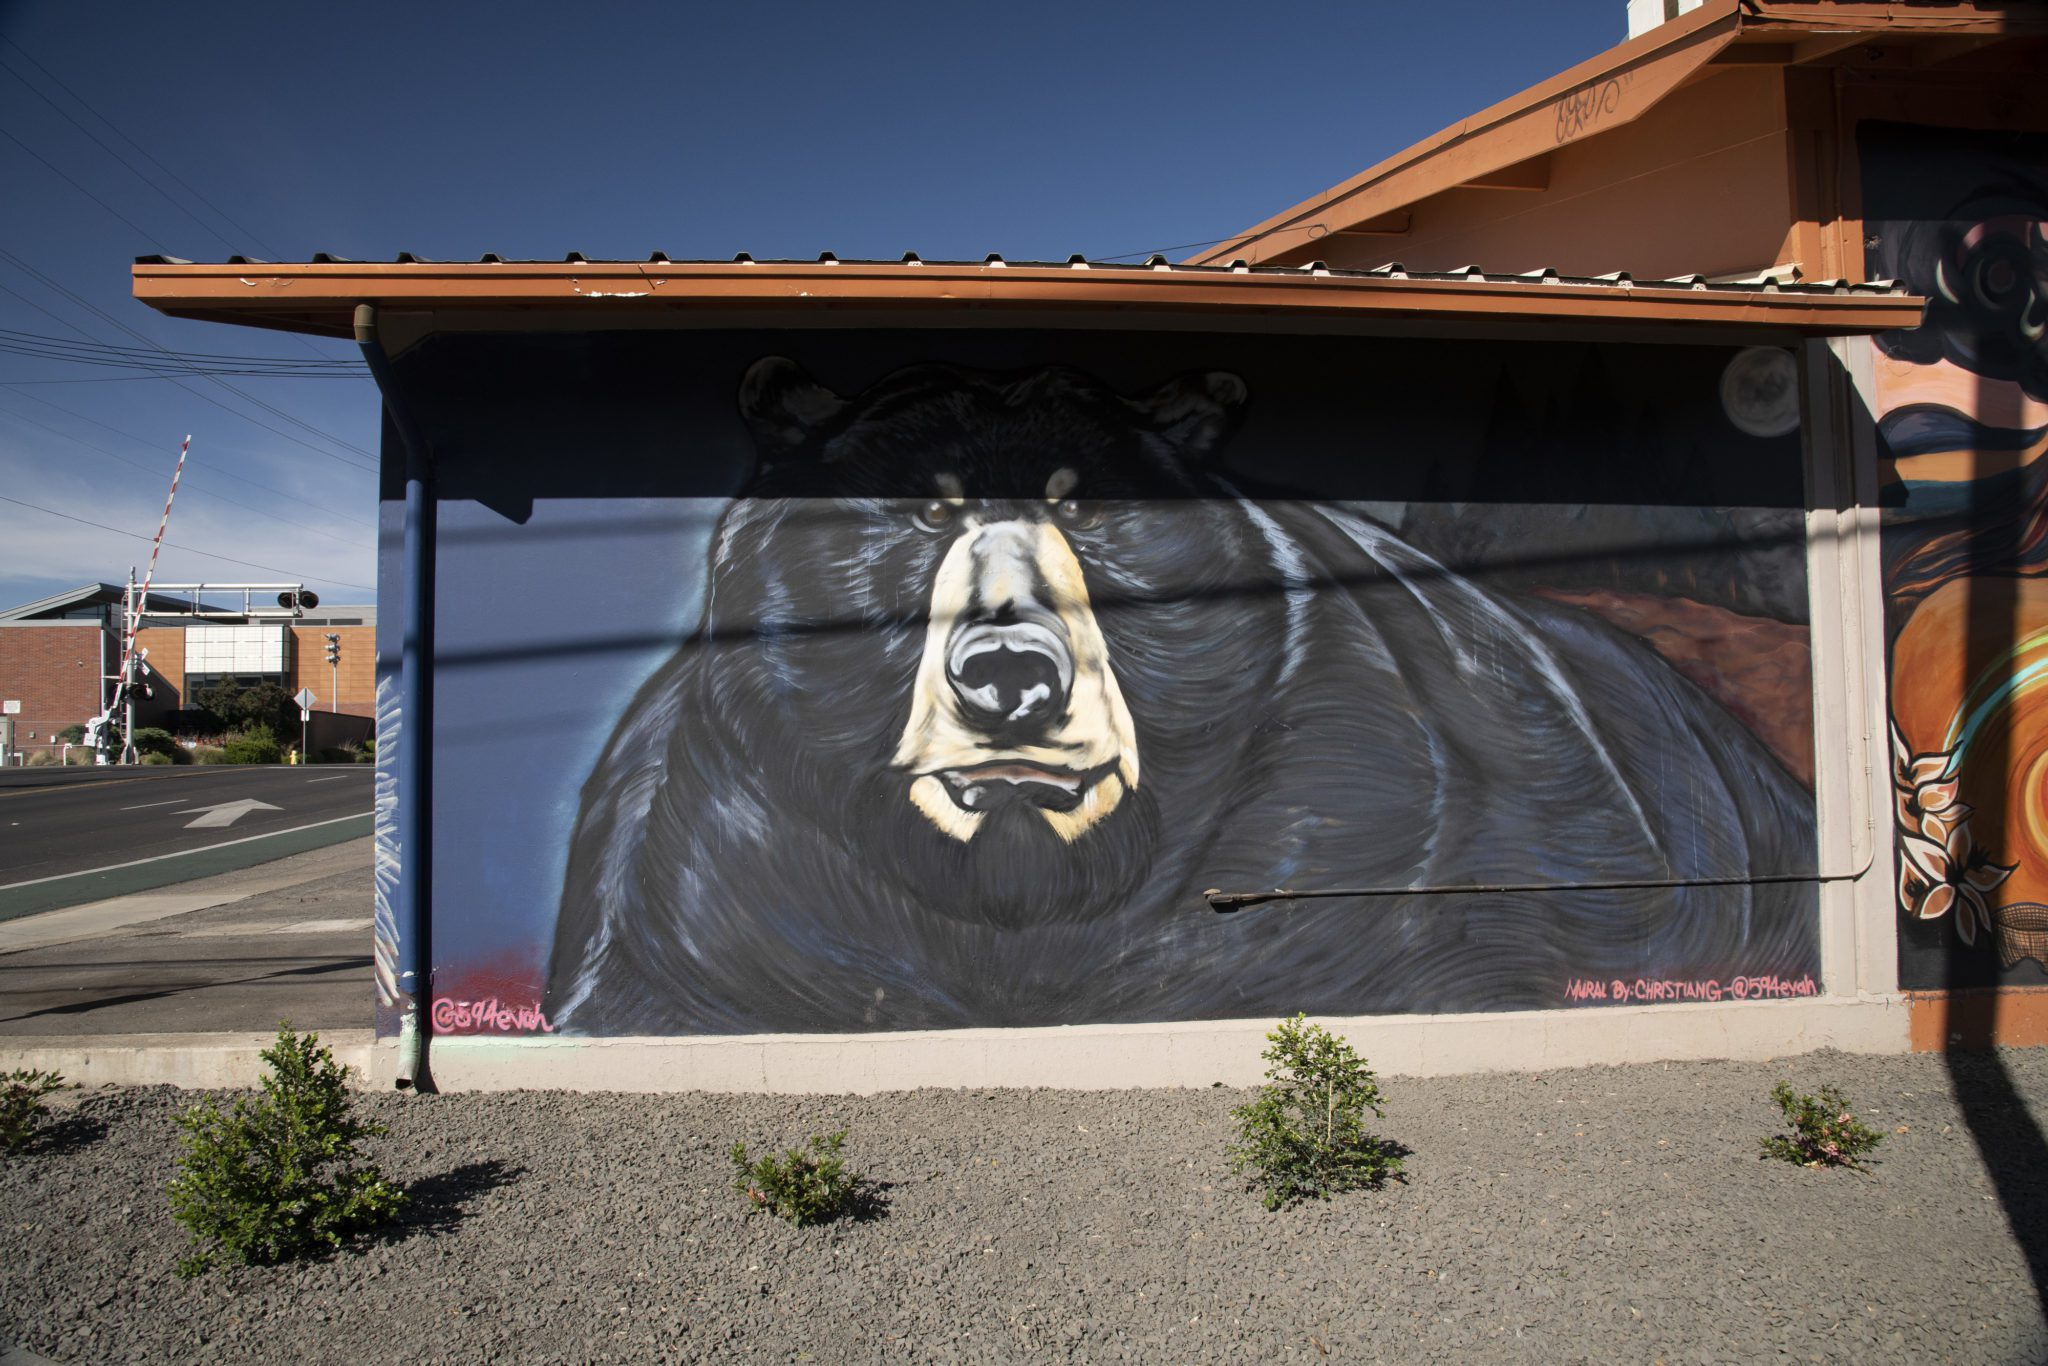 A mural by Ali Meders-Knight, a practitioner of traditional ecological knowledge and a member of the Mechoopda tribe, in Chico, Calif. Tuesday May 4, 2021.  Salgu Wissmath for The Intercept